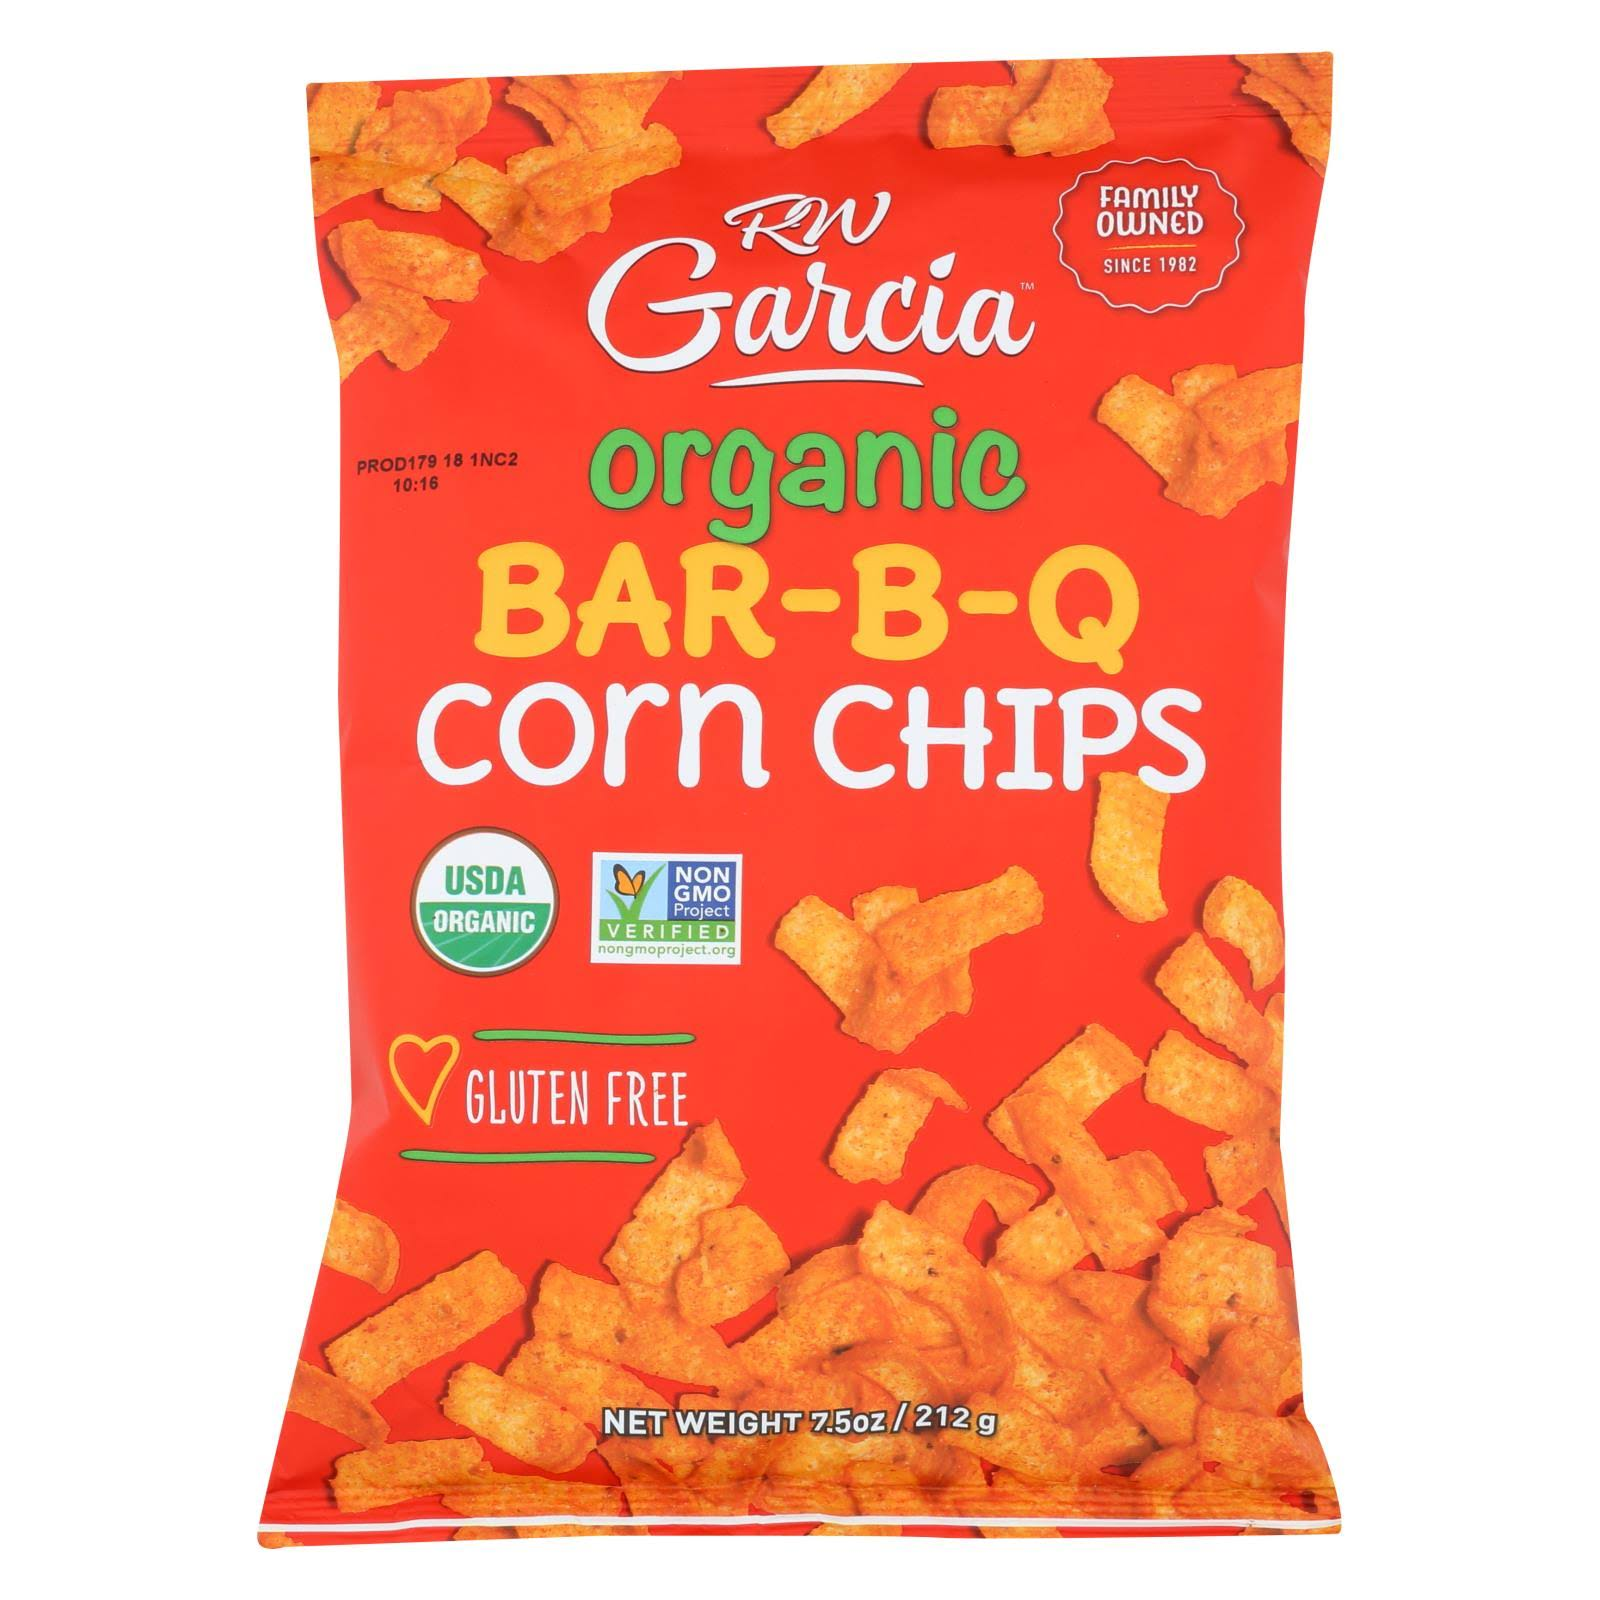 RW Garcia Organic Corn Chips - Bar-B-Q